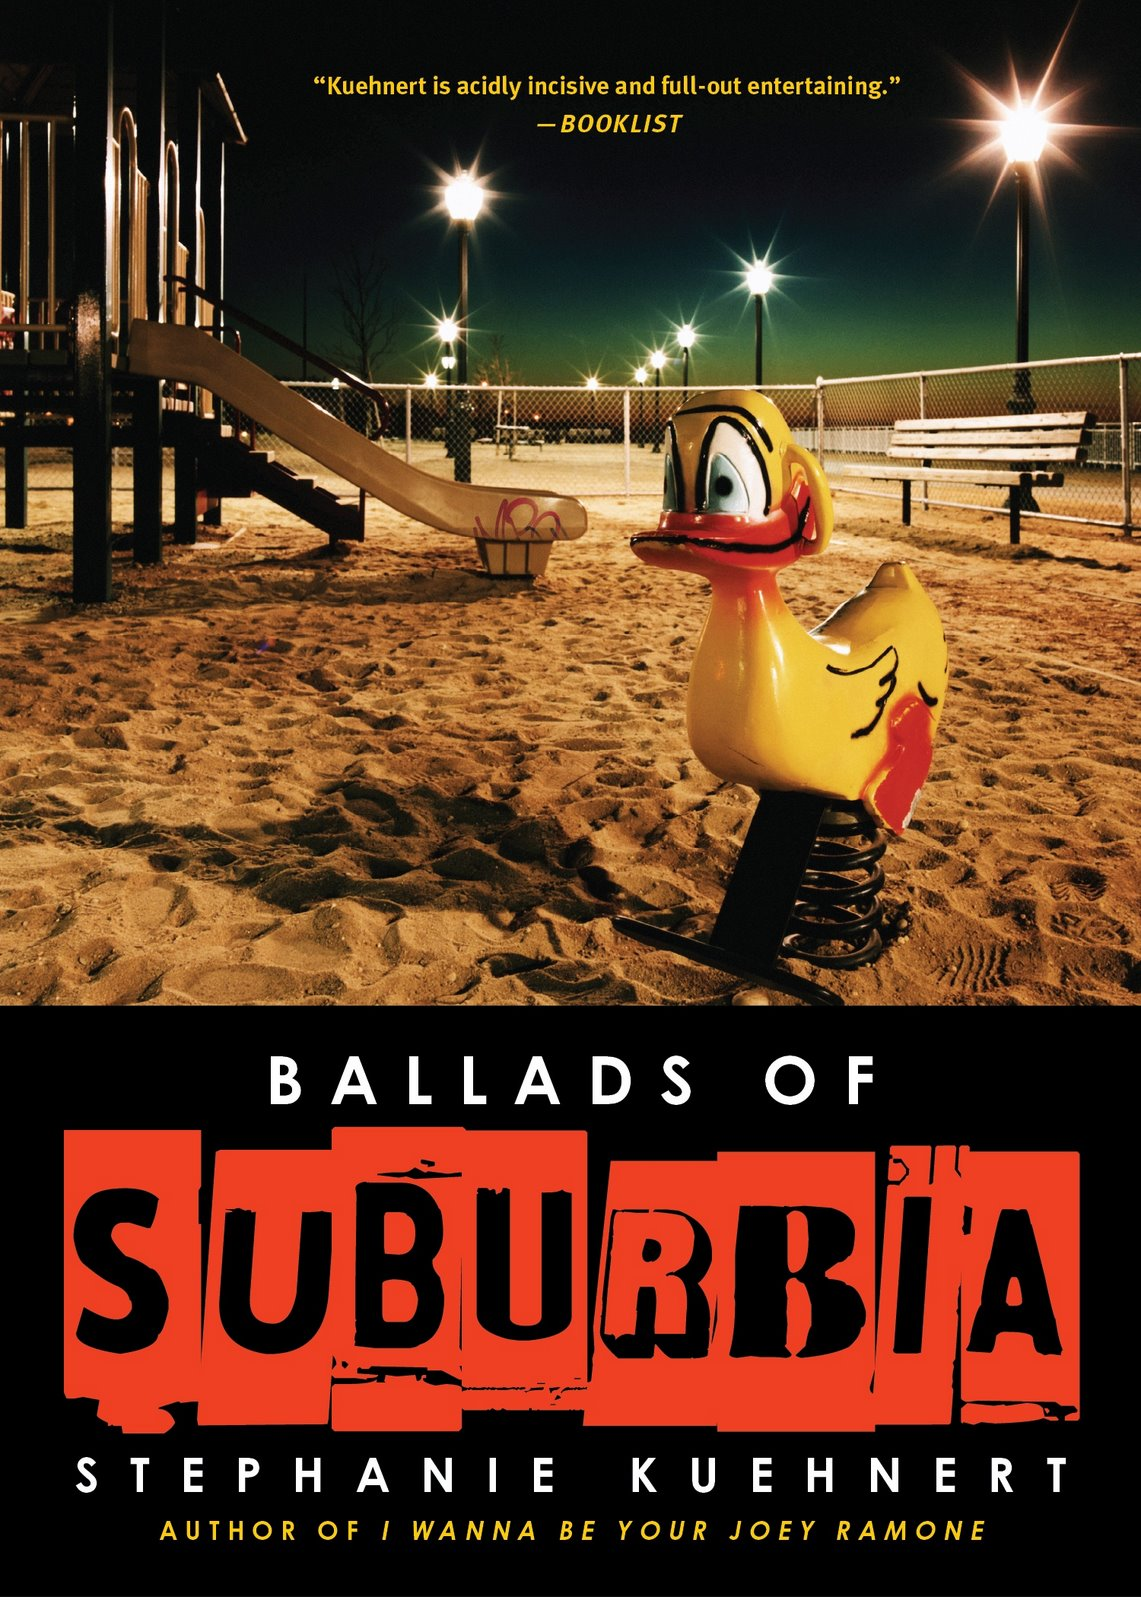 Friday Fronts - Ballads of Suburbia